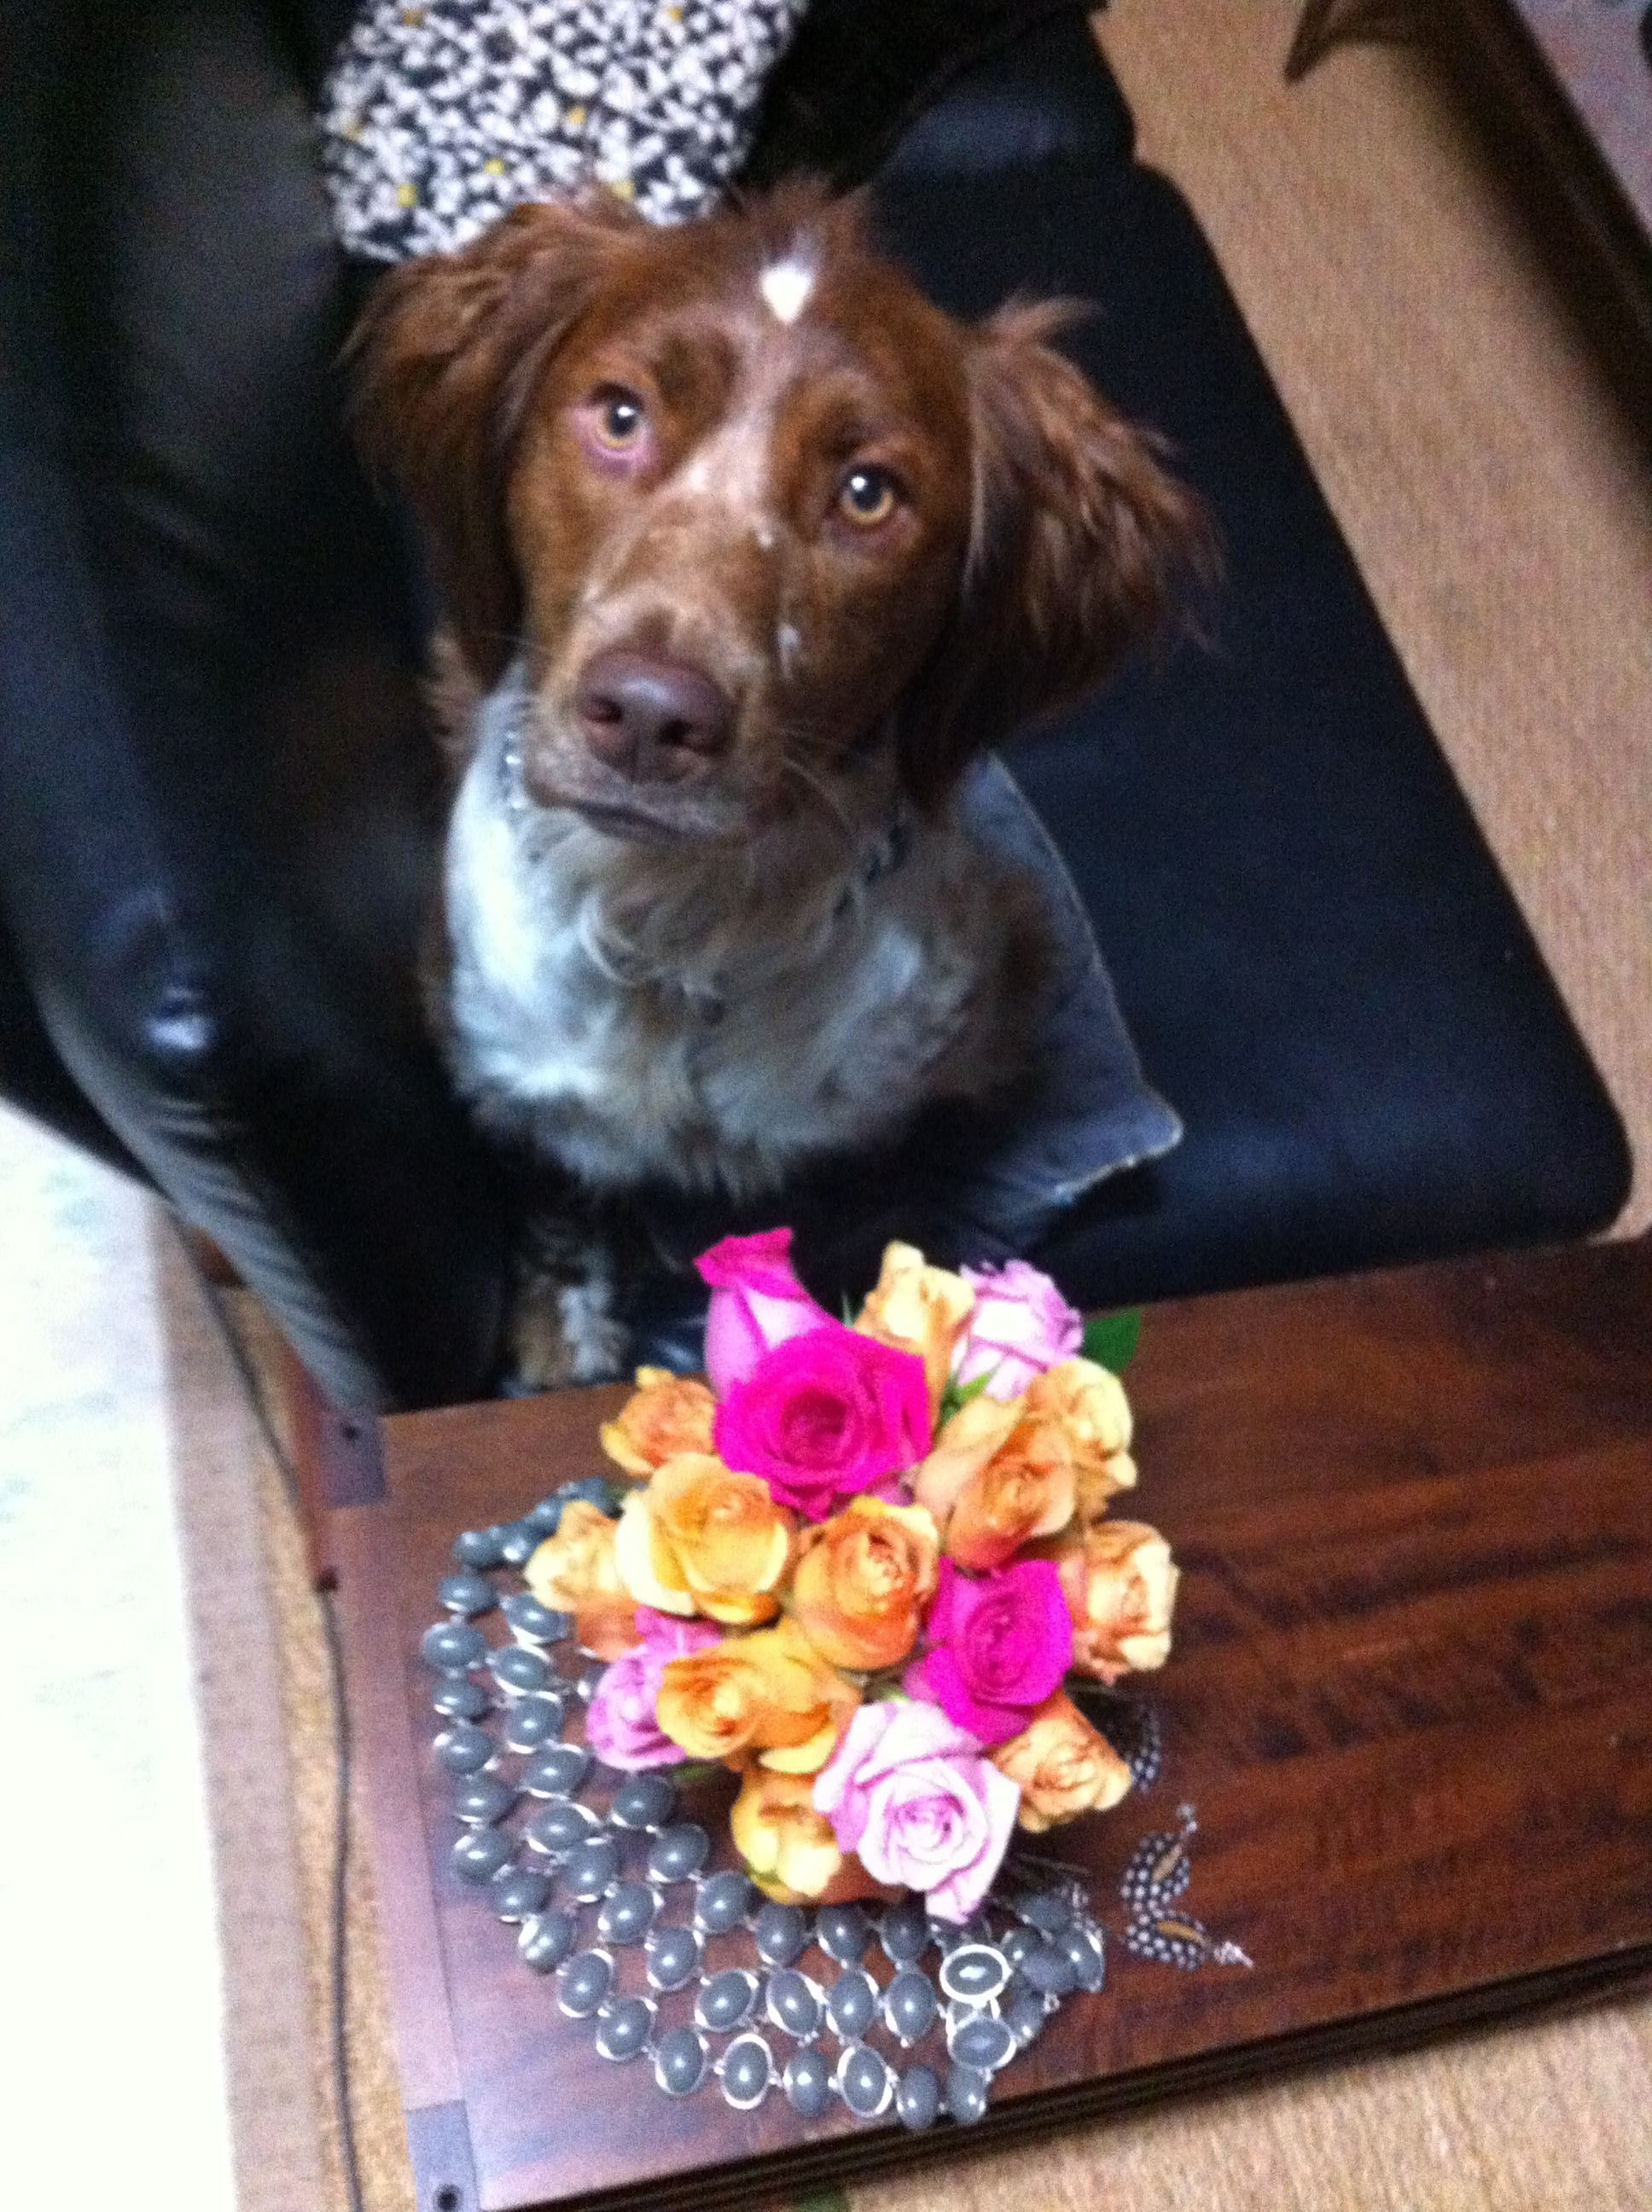 My dog loves flowers too..:)